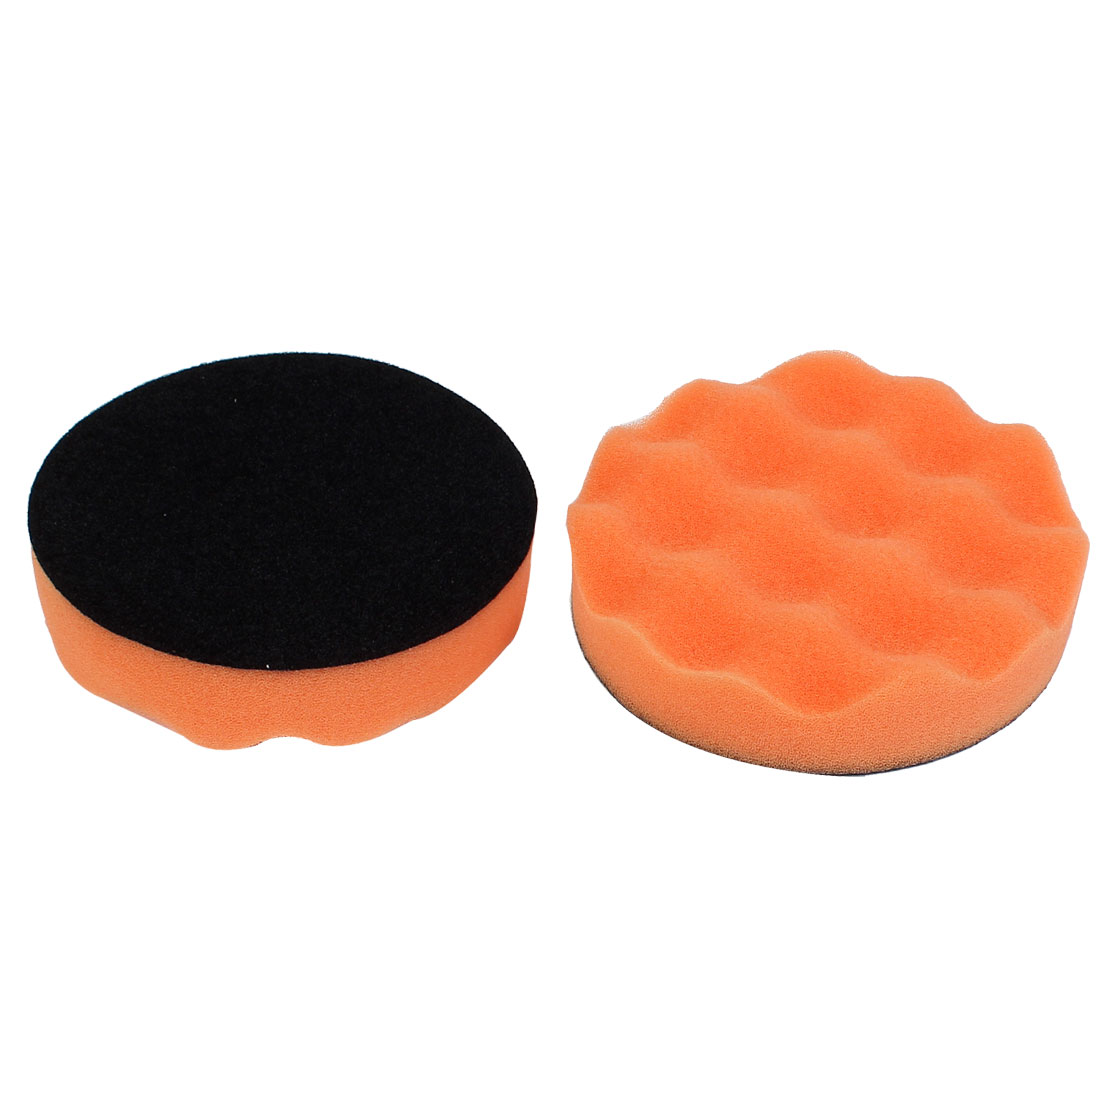 "Car Detailing 5"" x 1"" Wave Cut Polishing Sponge Mop Pad Polisher 2 Pcs"